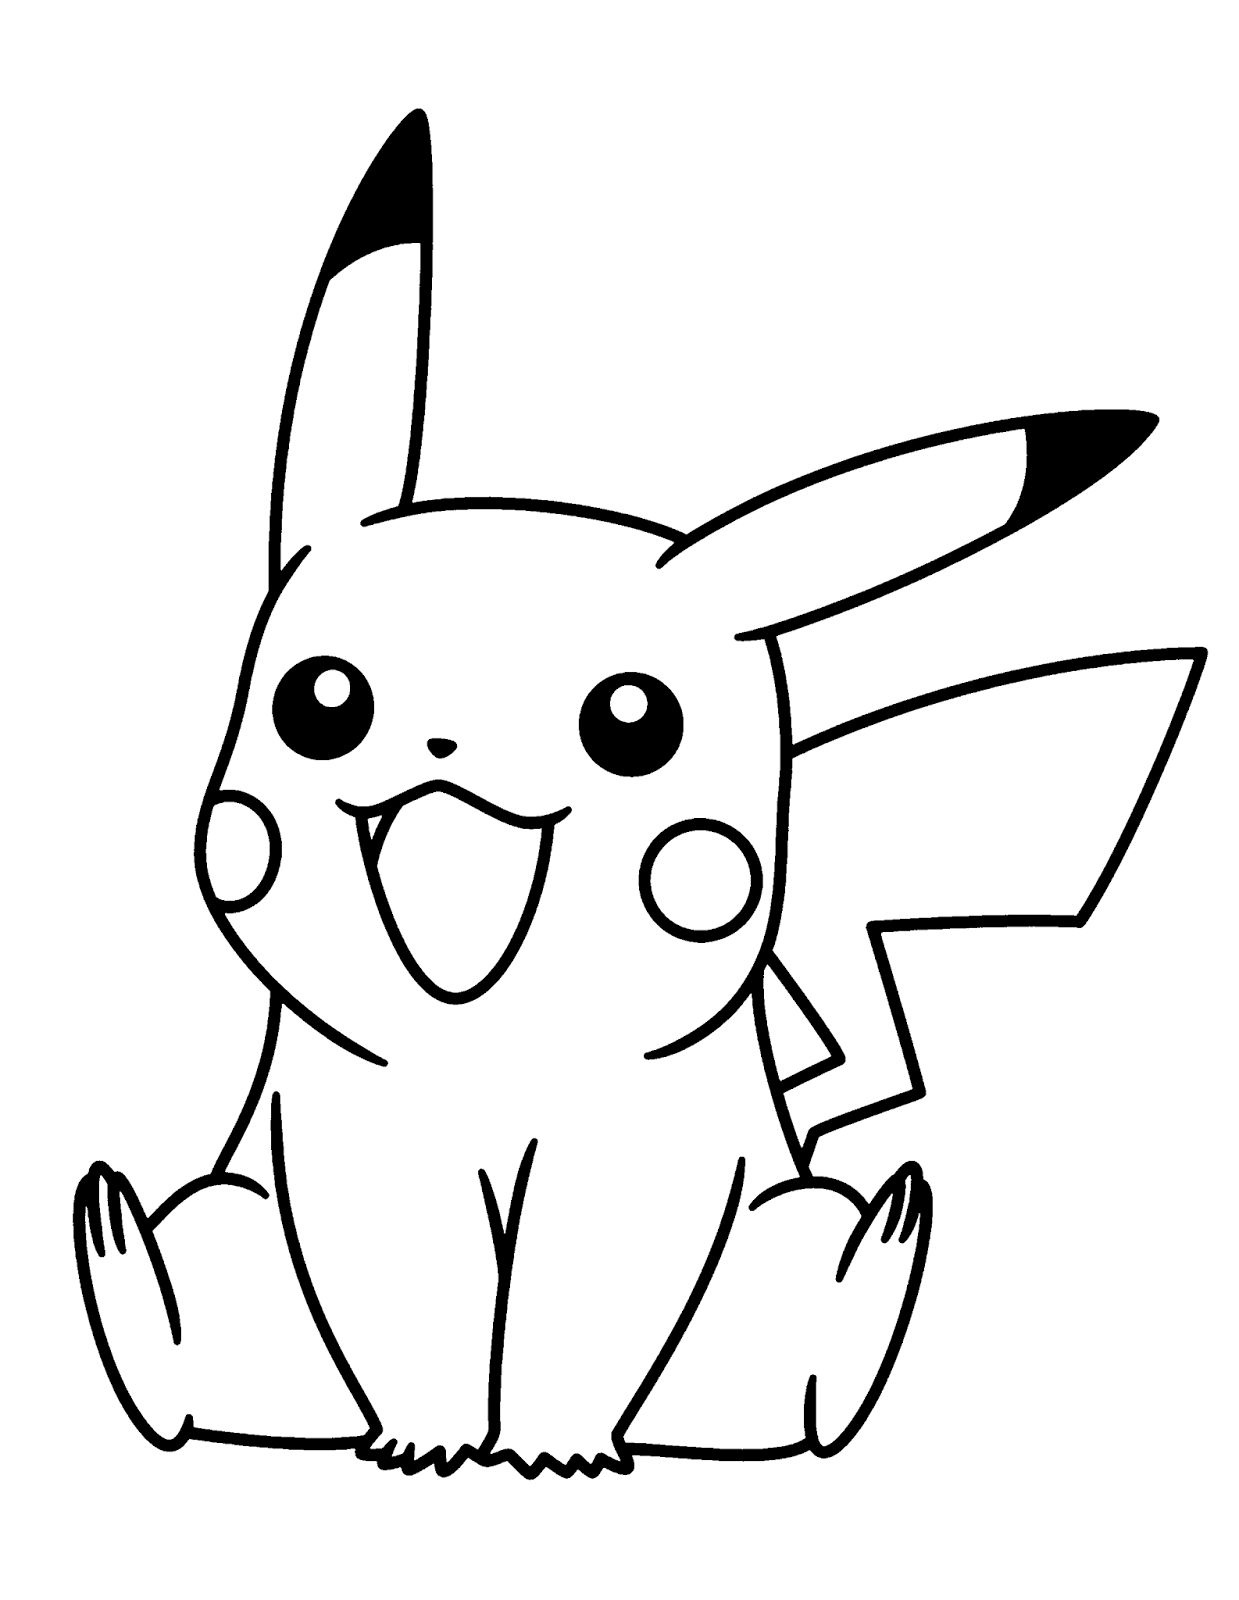 printable pokemon coloring pages pokemon coloring pages download pokemon images and print pokemon pages printable coloring